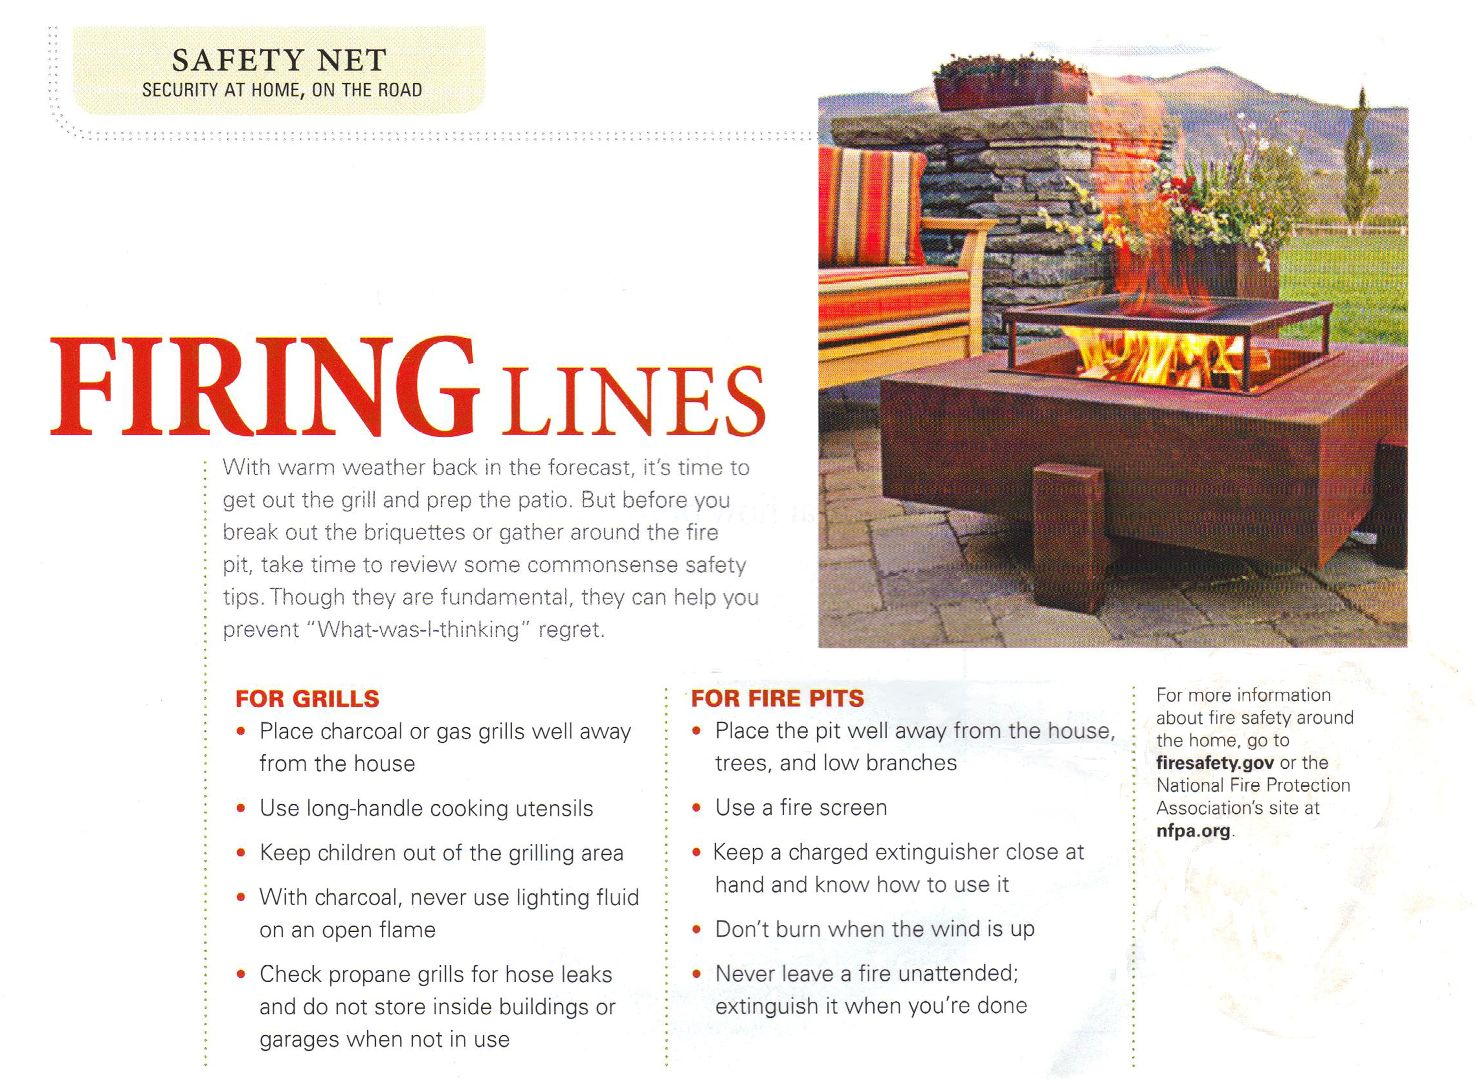 Safety For Use of Outdoor Grills and Fire Pits